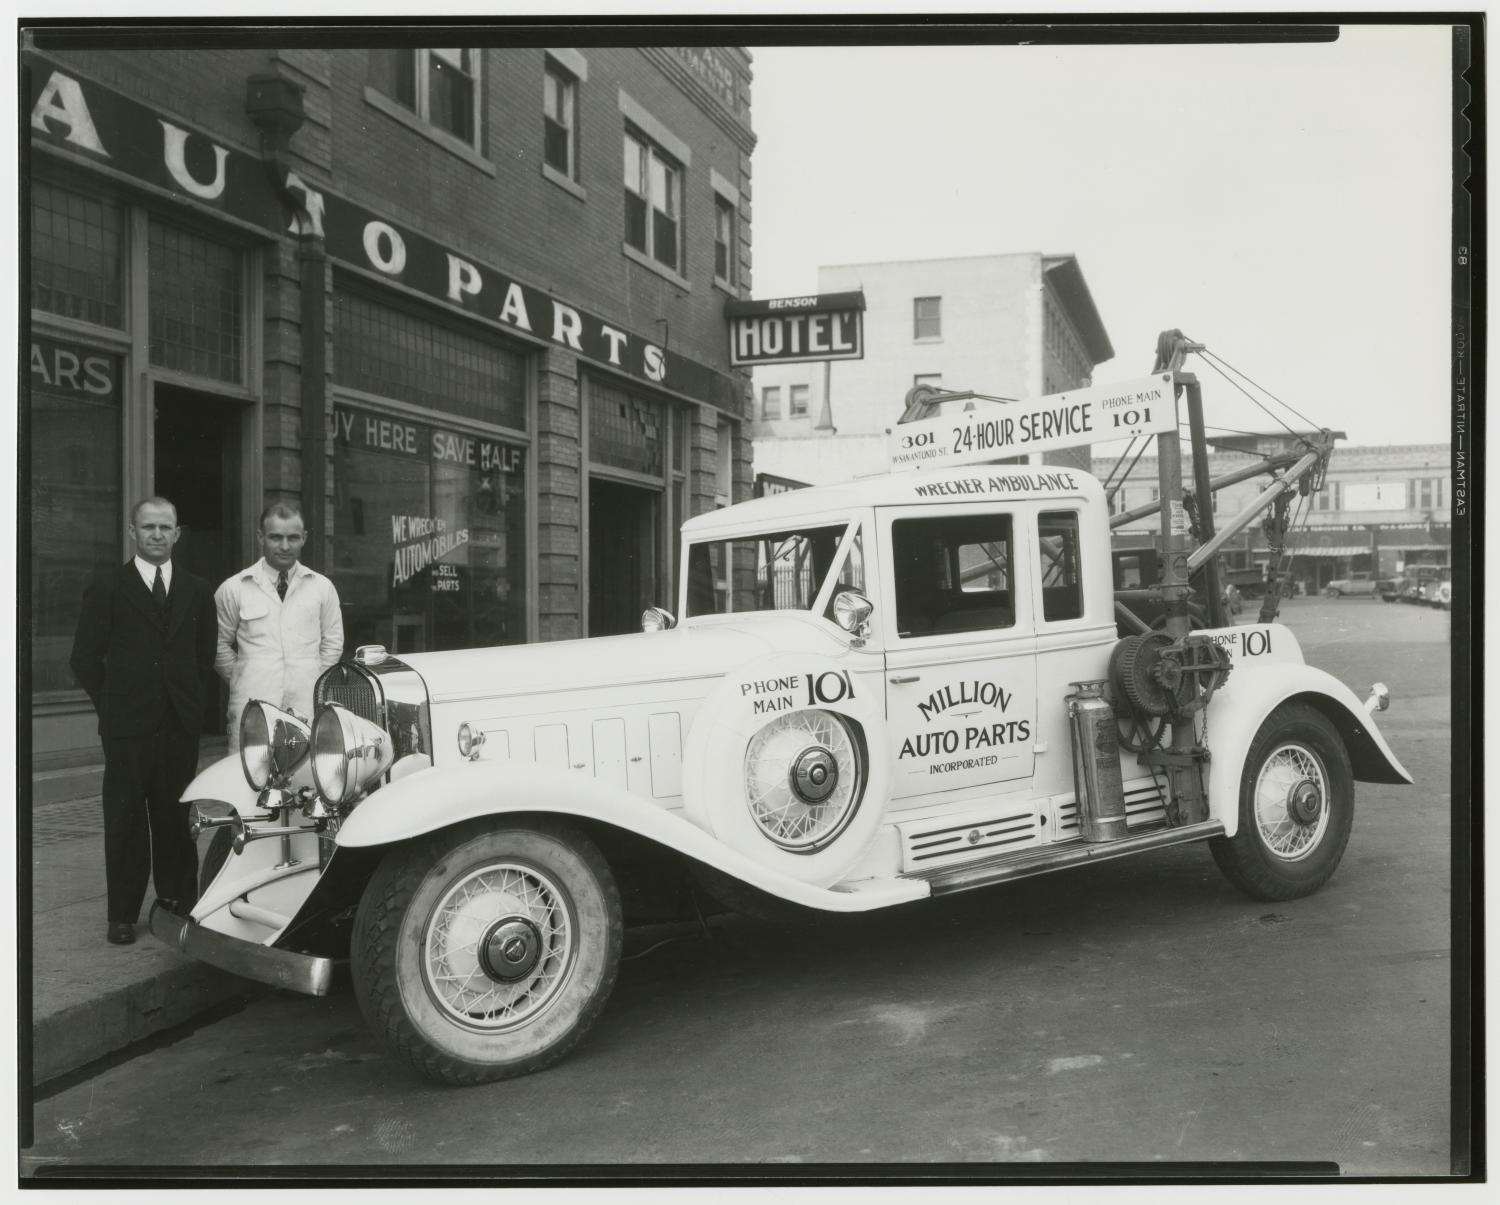 Million Auto Parts Incorporated Wrecker Ambulance] - The Portal to ...